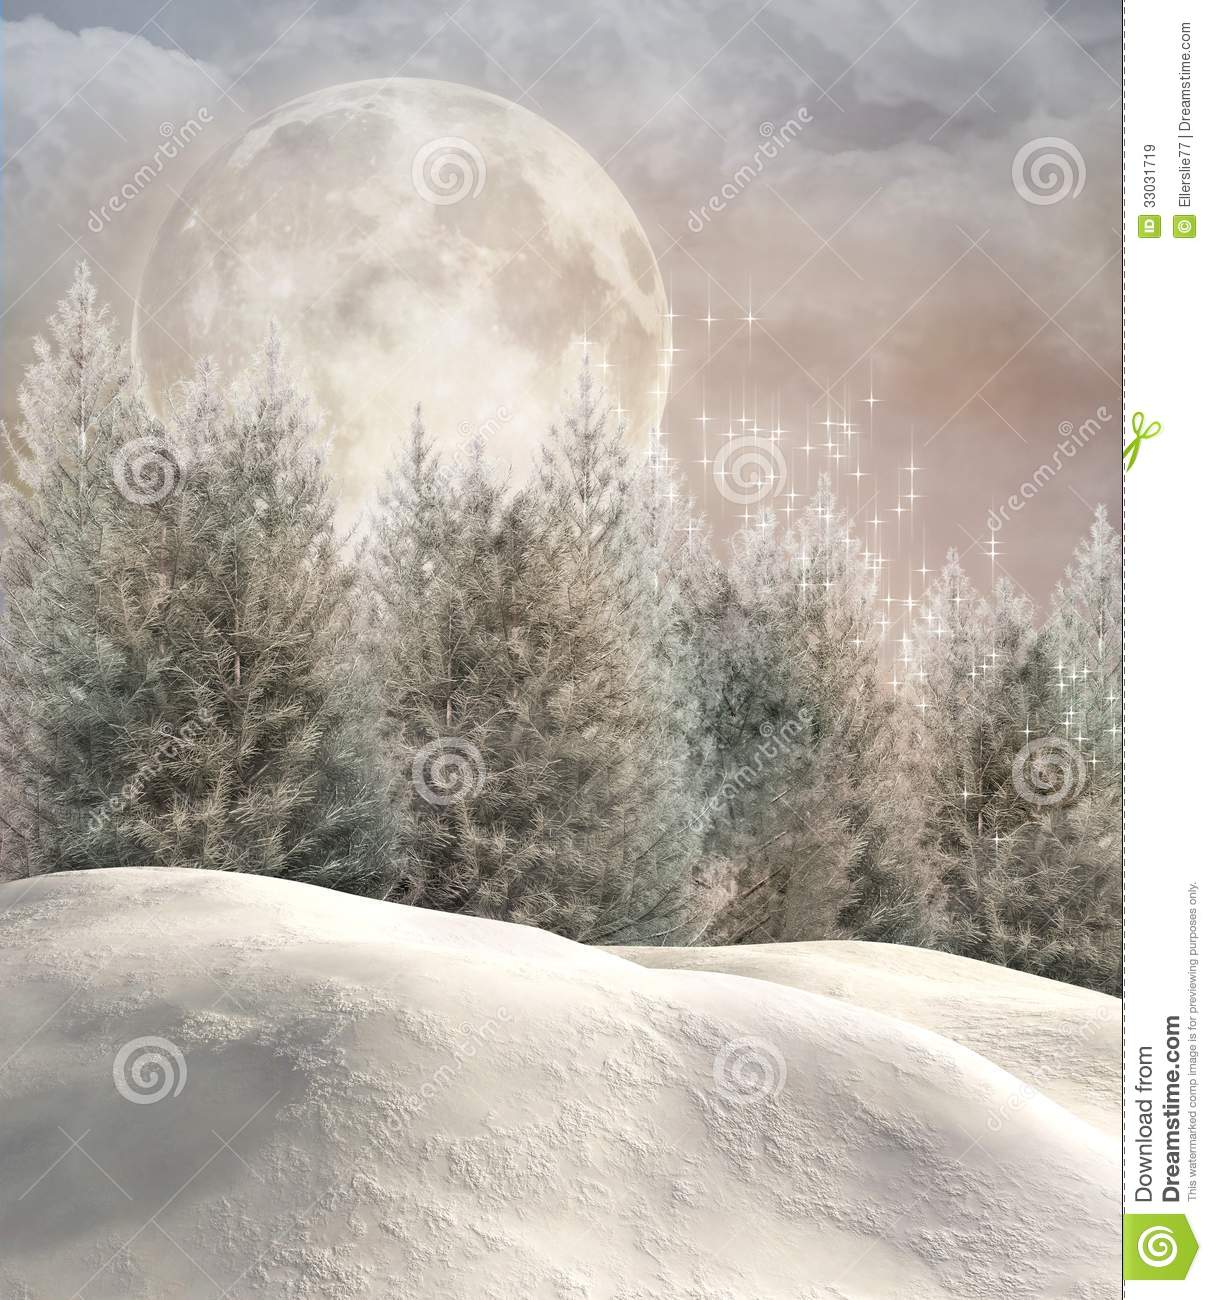 Enchanted winter forest